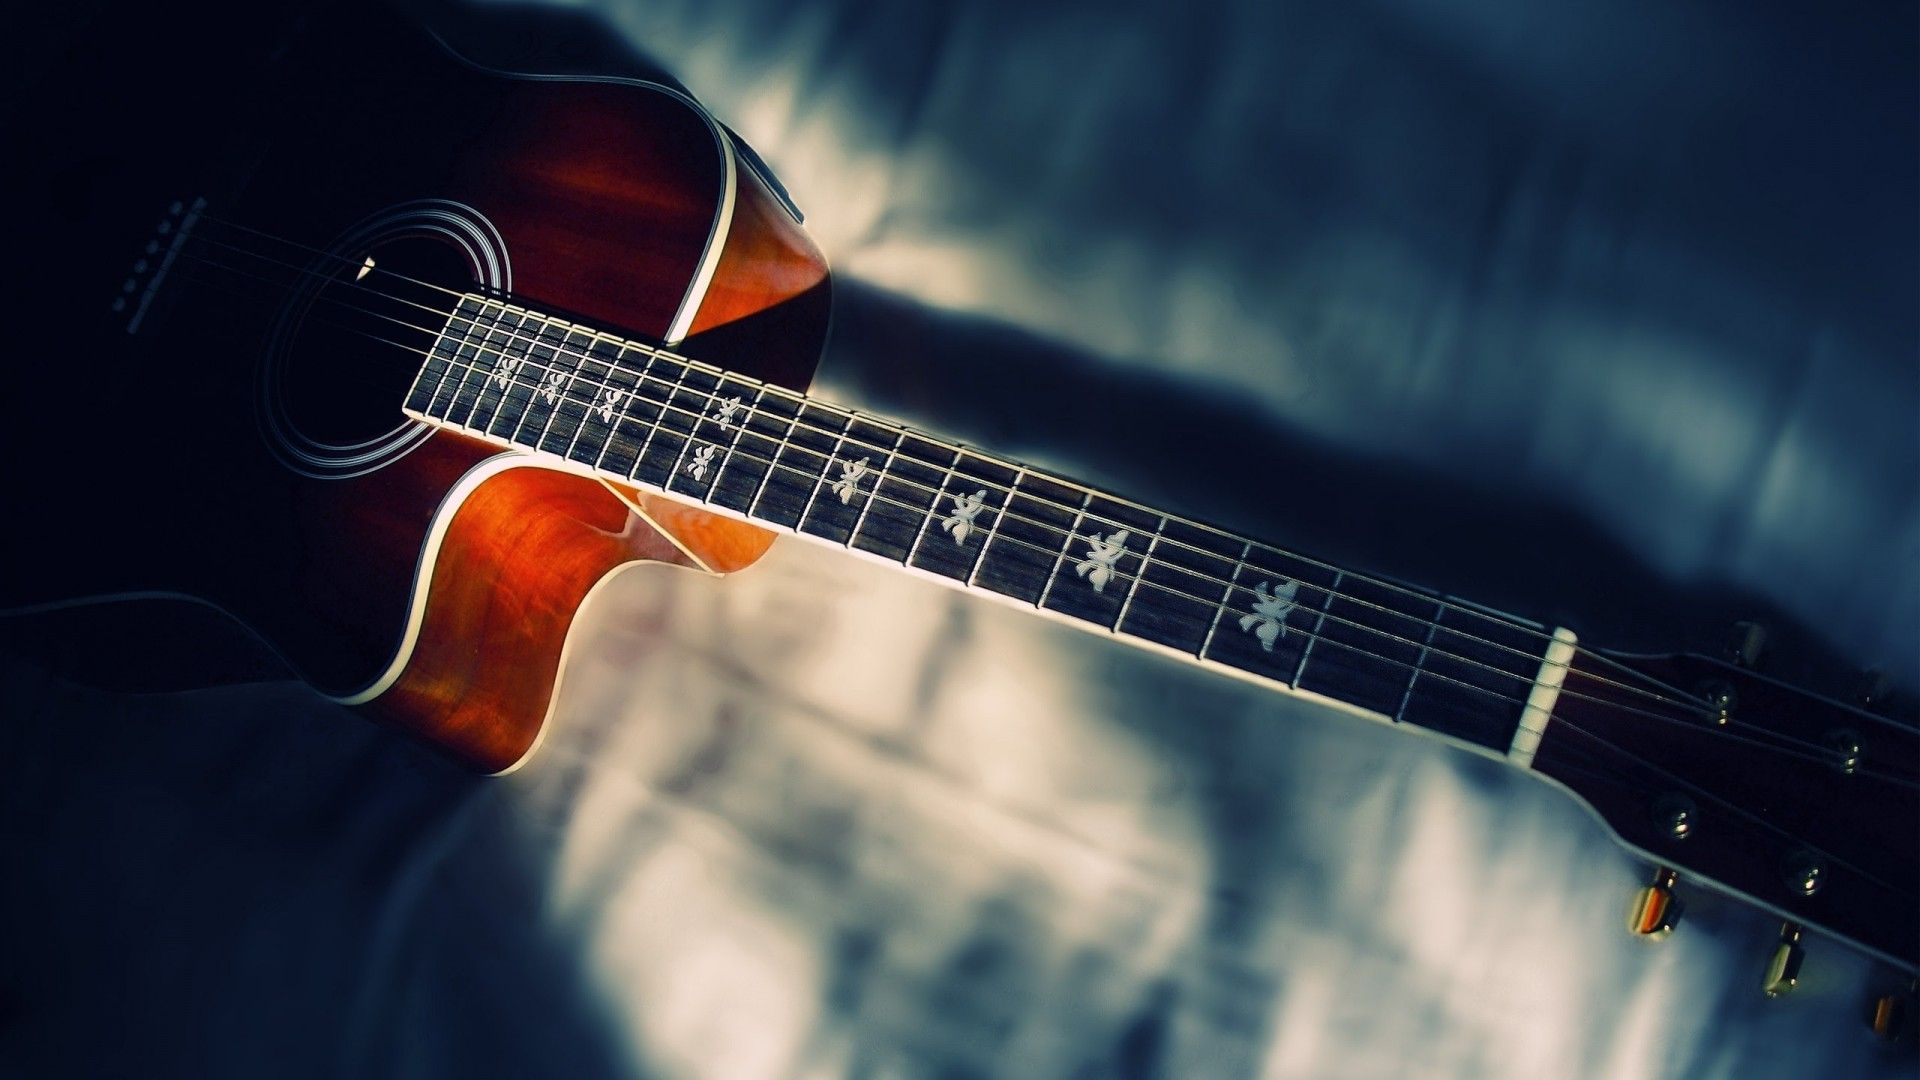 60 Acoustic Guitar Nokia Wallpapers   Download at WallpaperBro 1920x1080